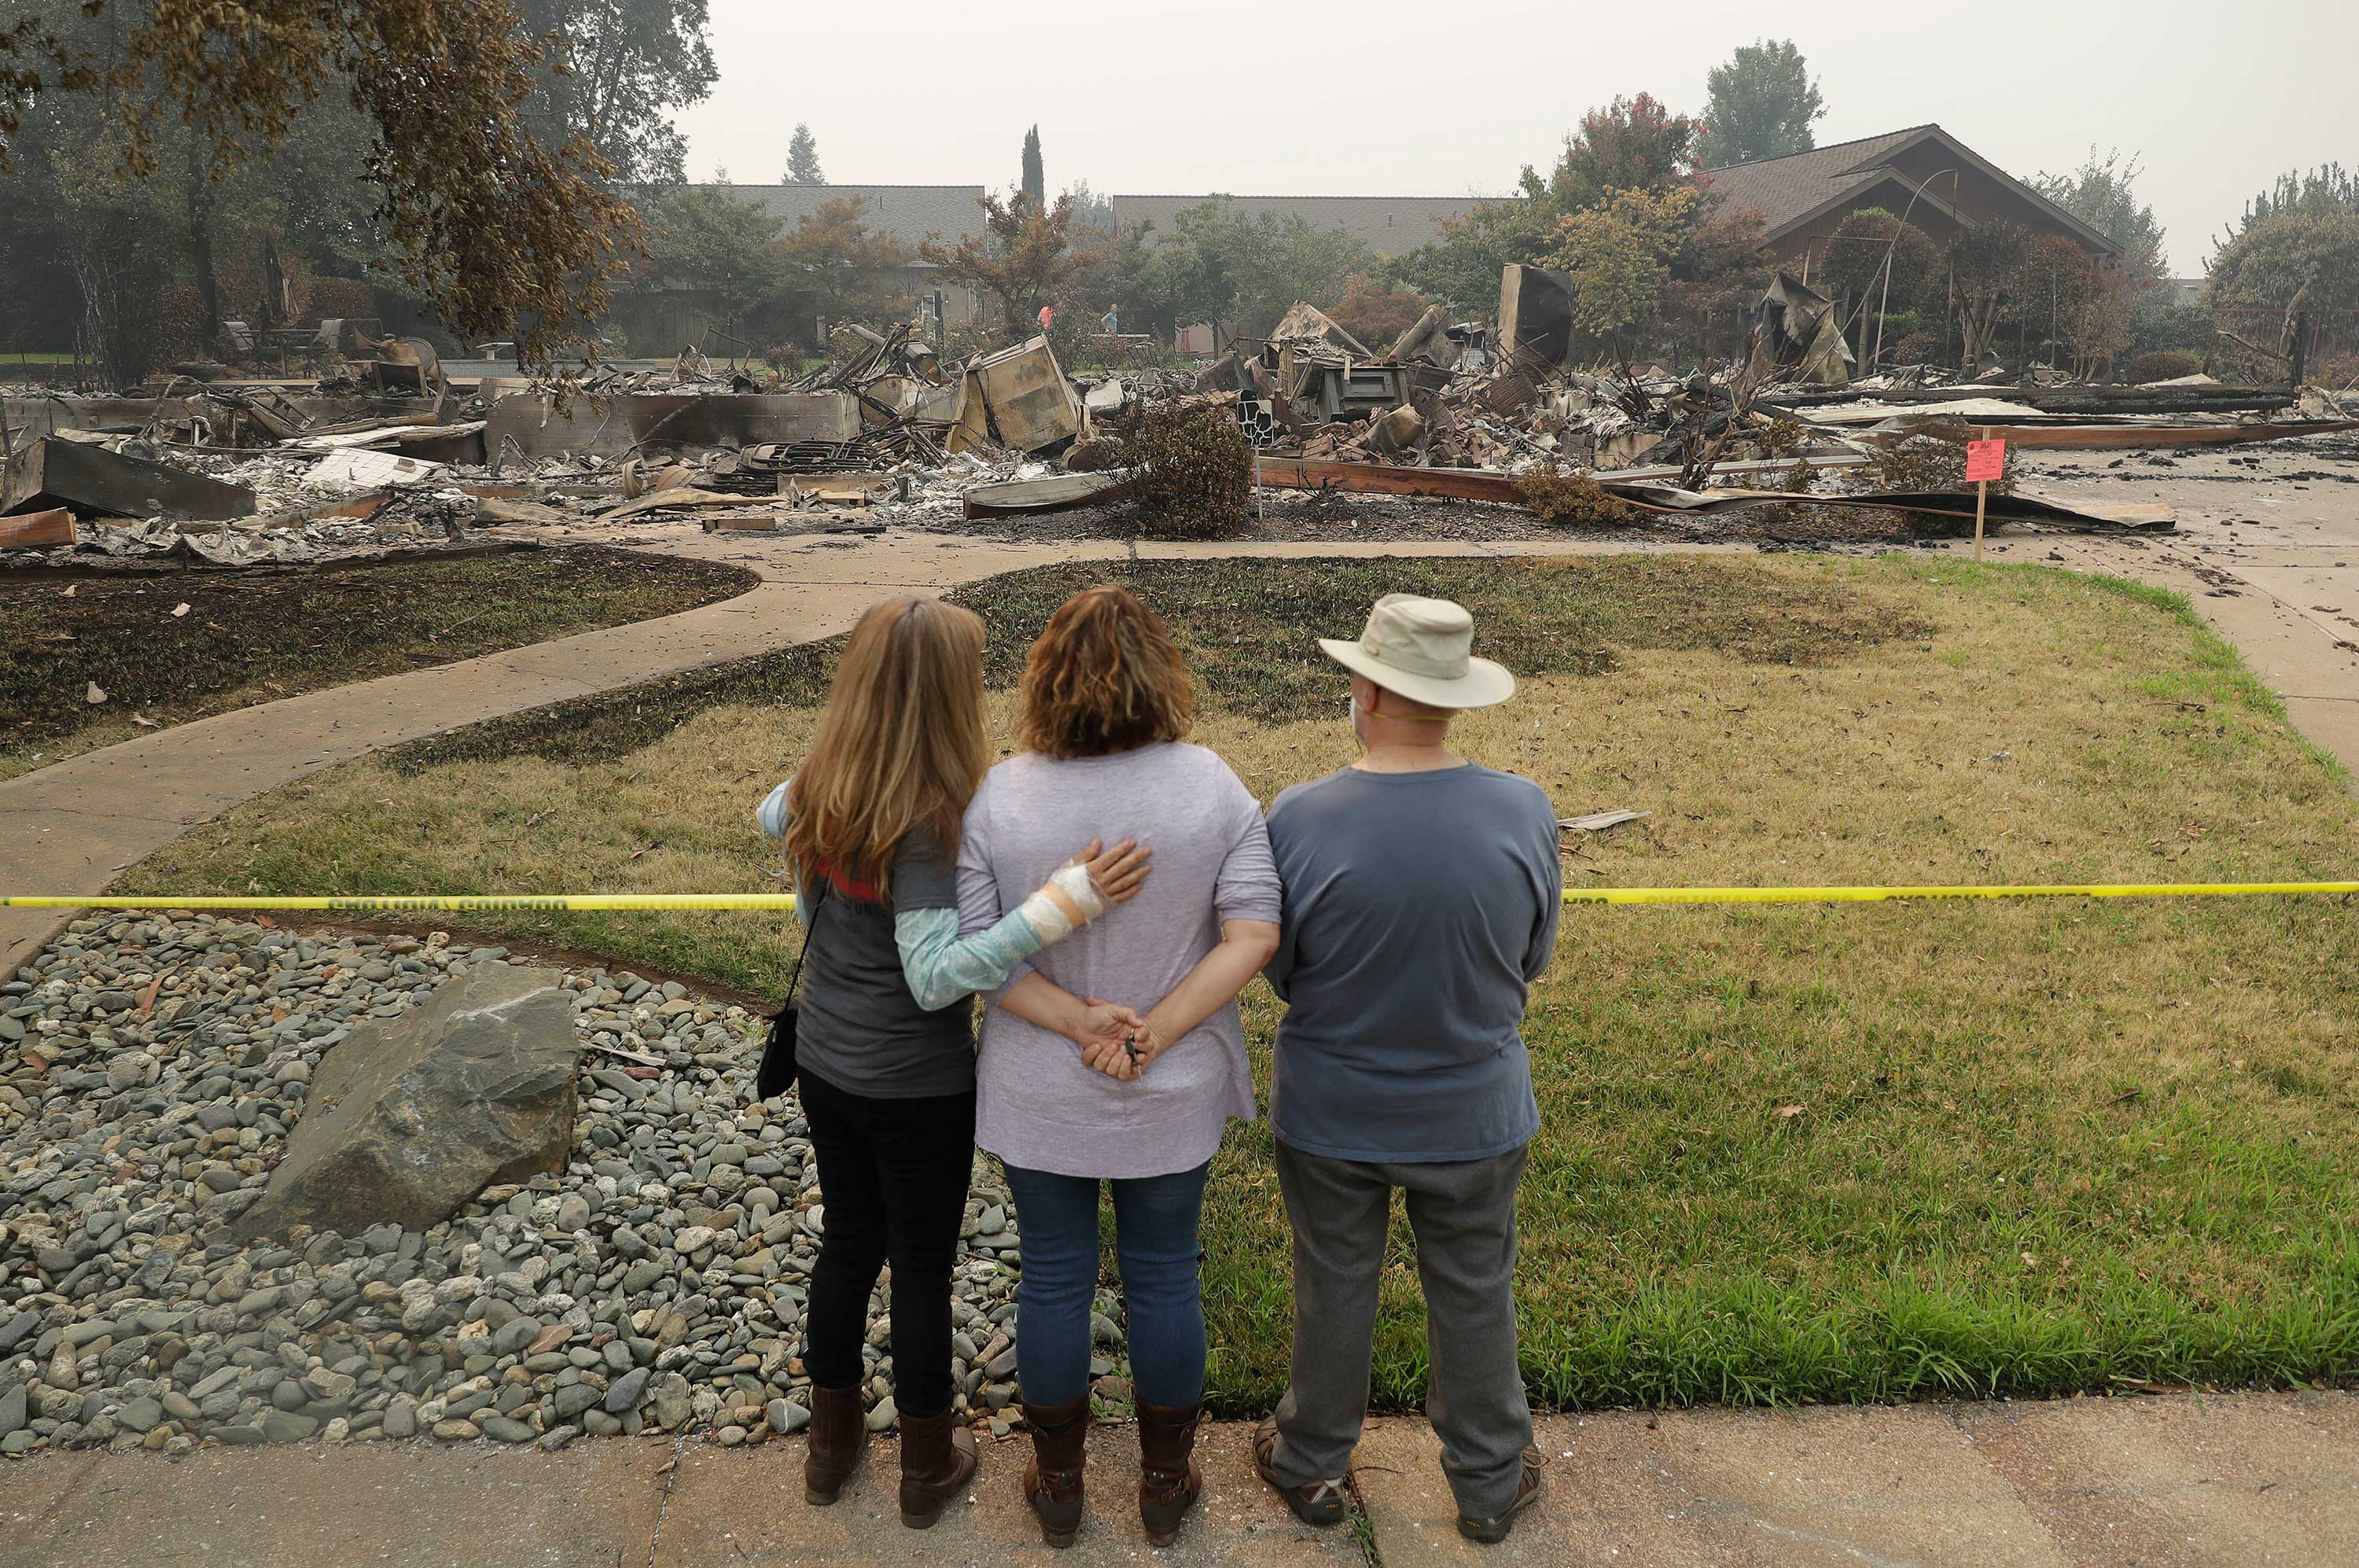 "<div class=""meta image-caption""><div class=""origin-logo origin-image none""><span>none</span></div><span class=""caption-text"">Tim Smith, at right, gets a first look at his wildfire-ravaged home alongside his daughter, Suzie Scatena, center, and aid worker Deborah Coombs Thursday, Aug. 2. (Marcio Jose Sanchez/AP Photo)</span></div>"